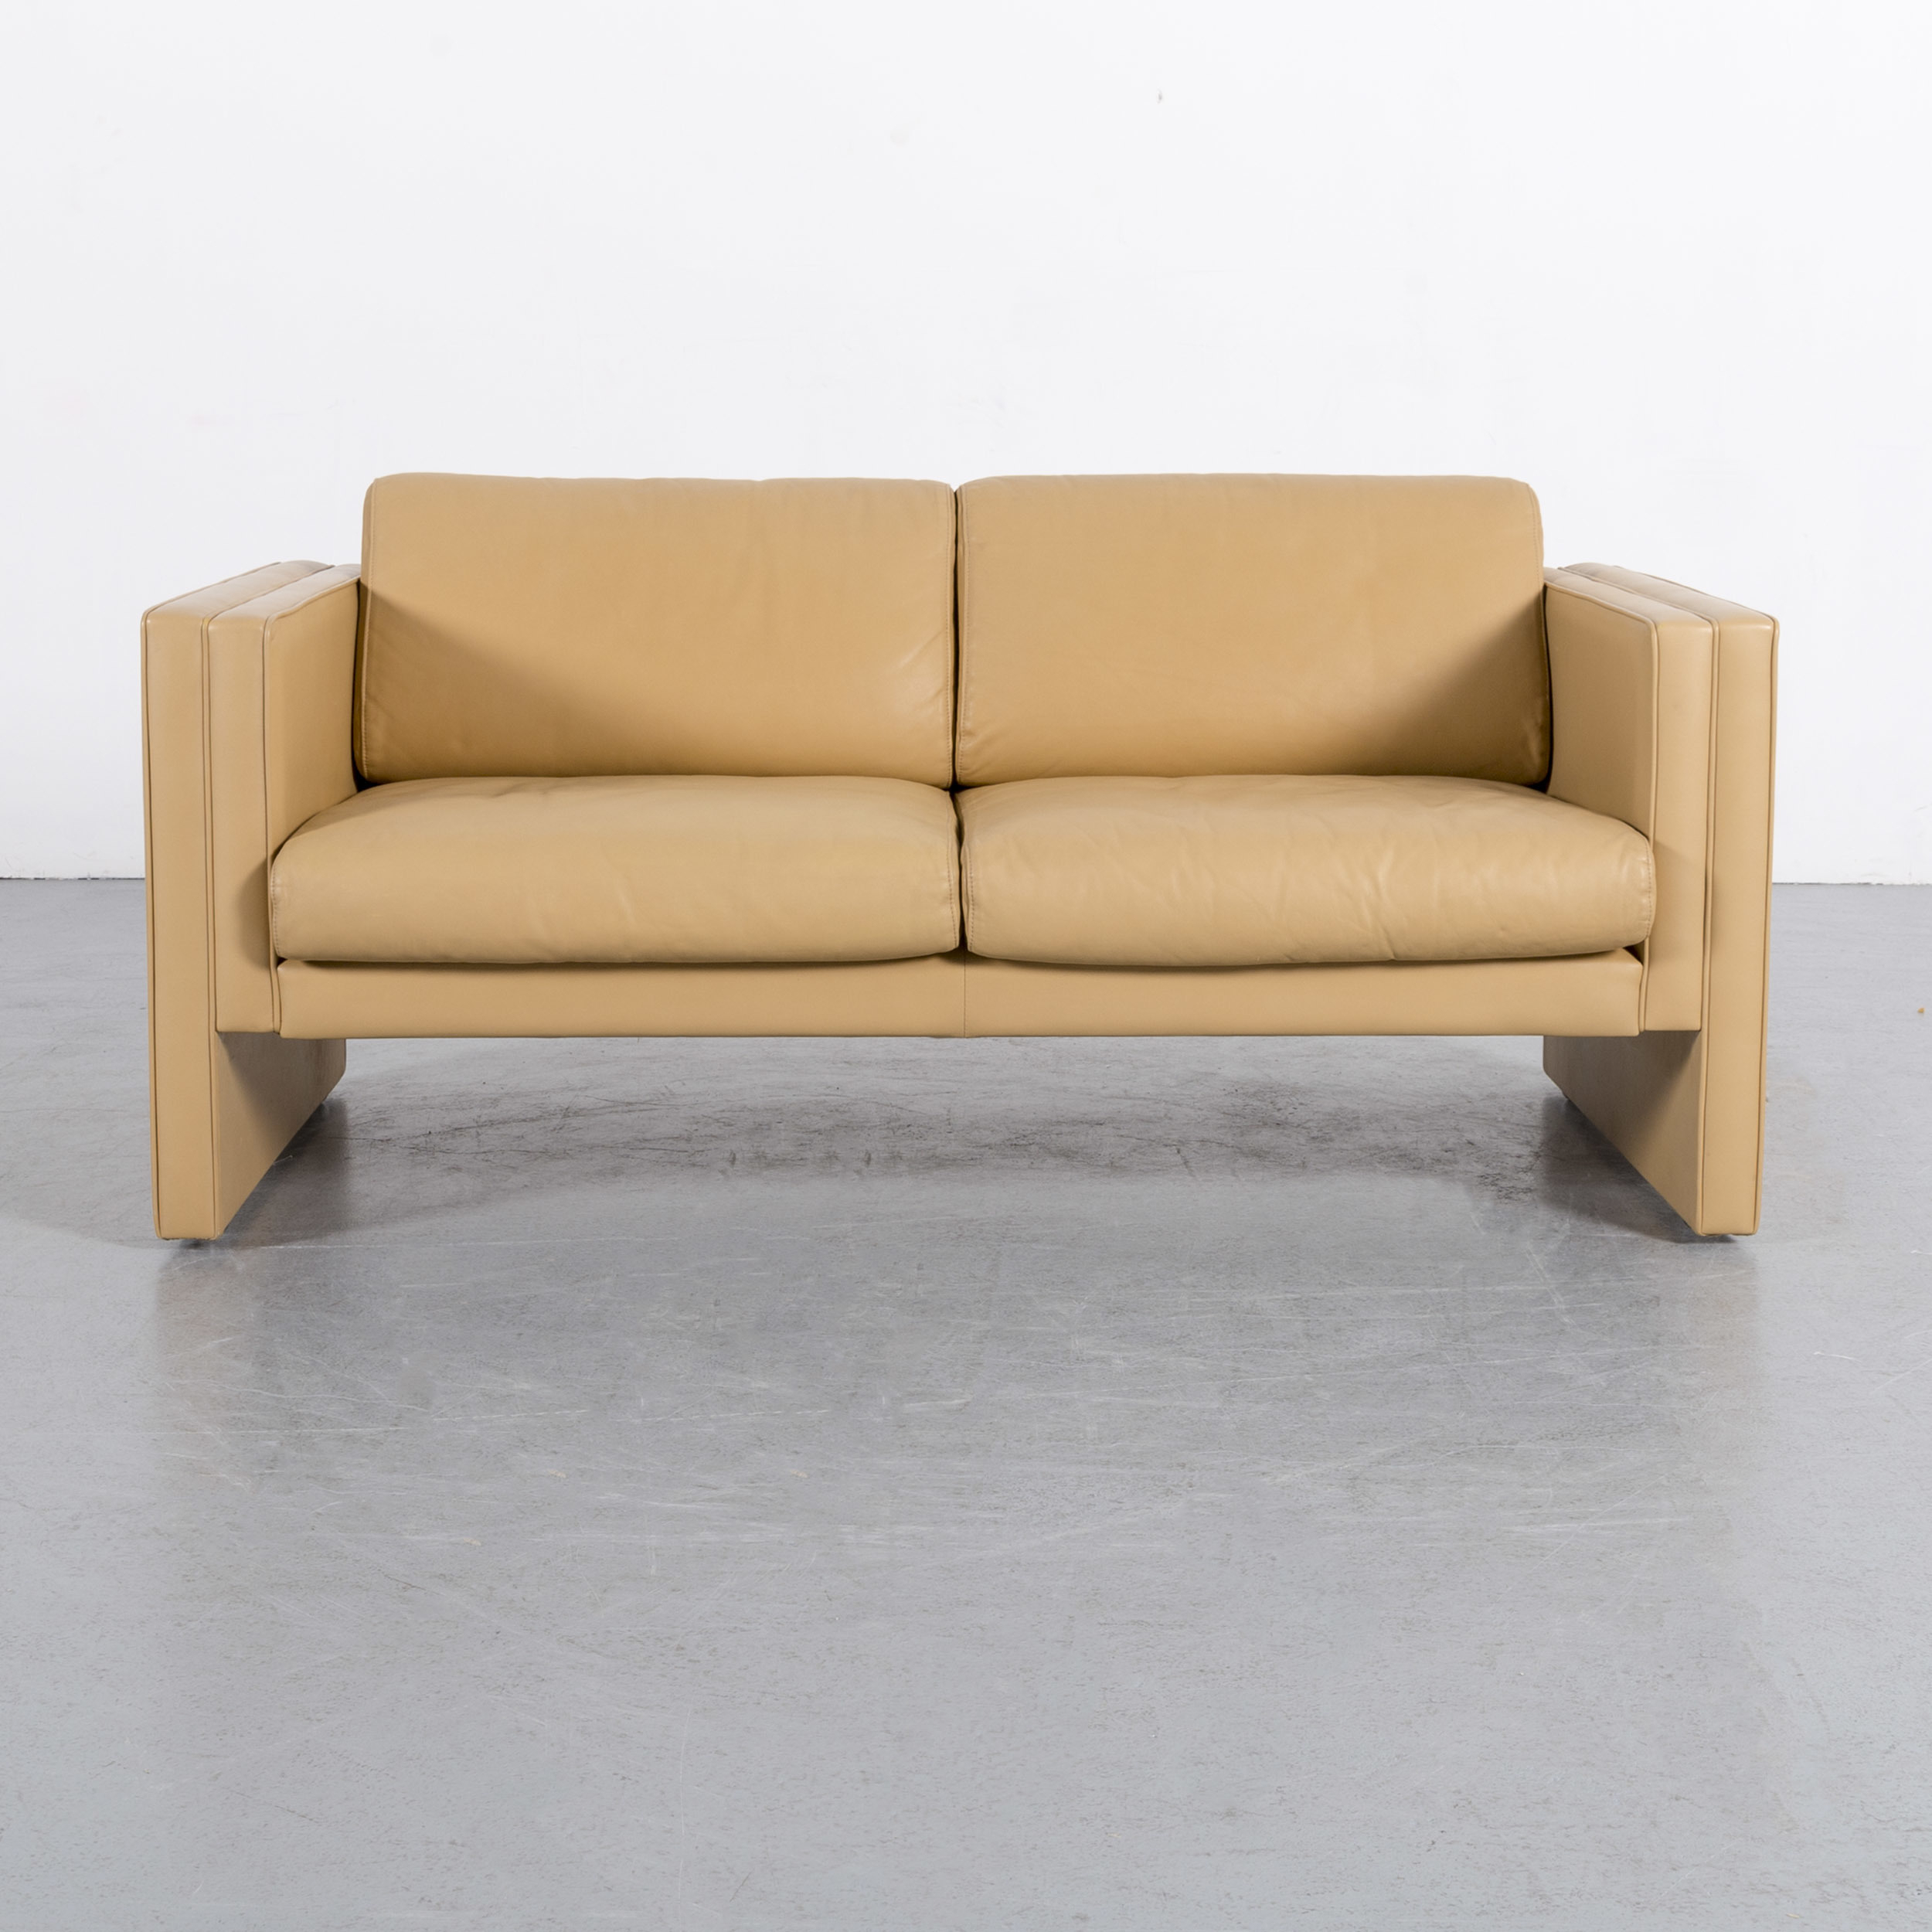 Walter Knoll Leather Sofa Yellow Beige Two Seater Couch Genuine Throughout Walter Leather Sofa Chairs (Image 14 of 20)